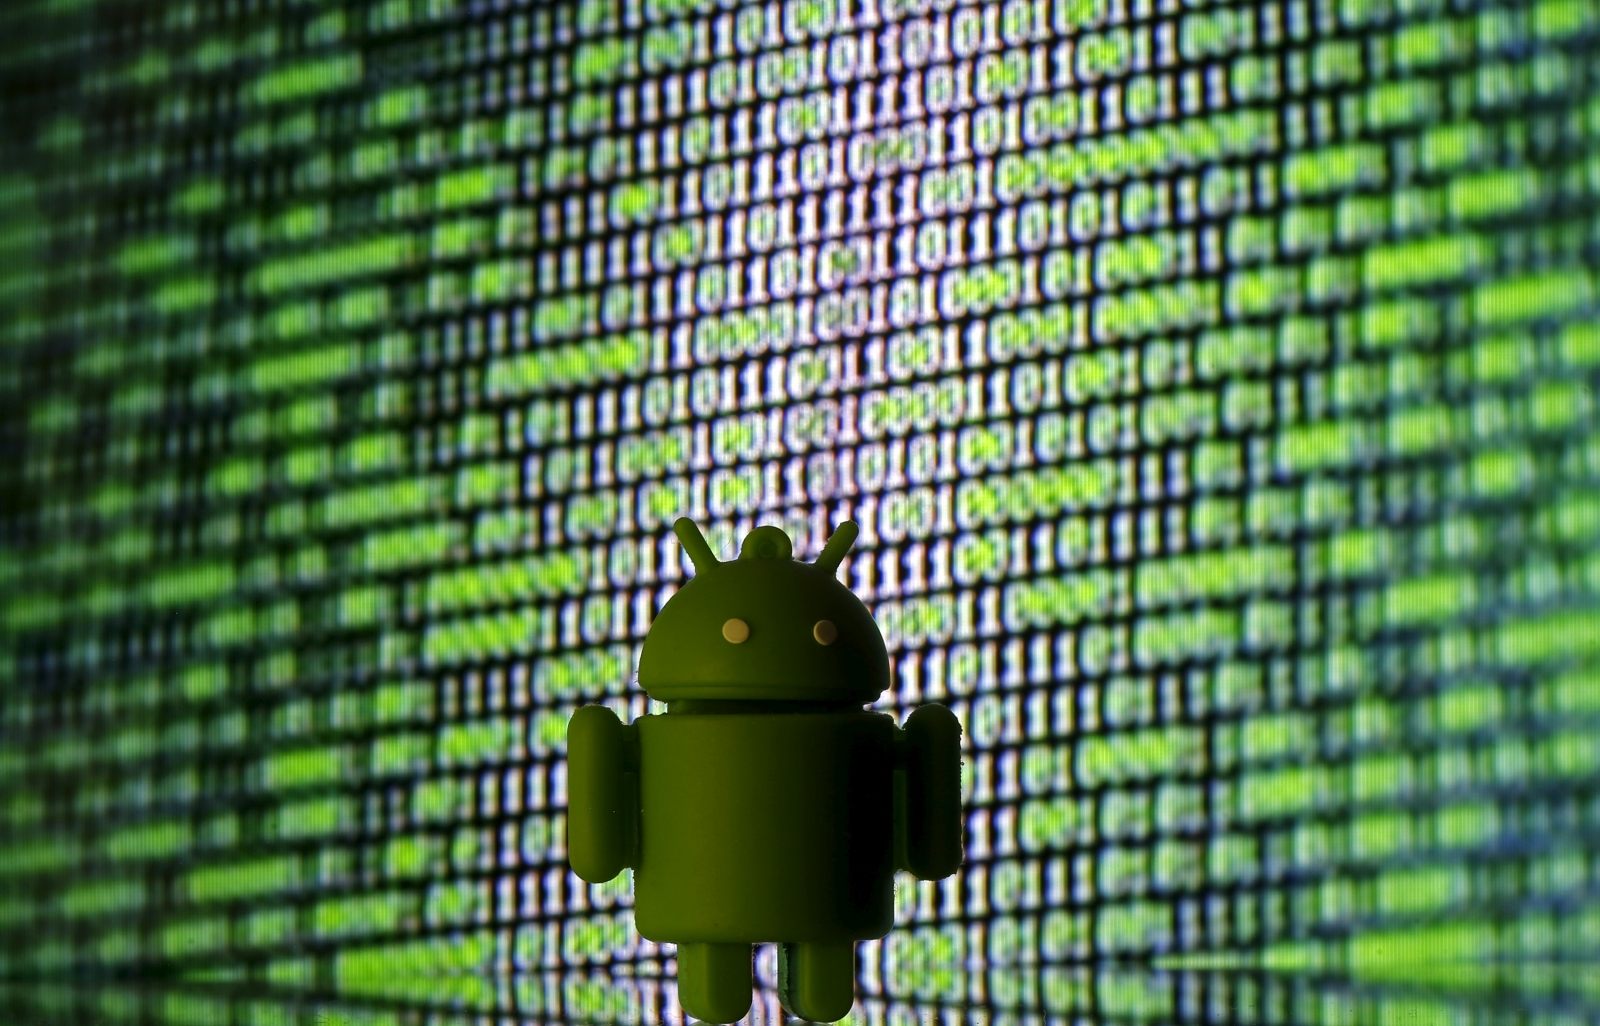 Android Forums hacked